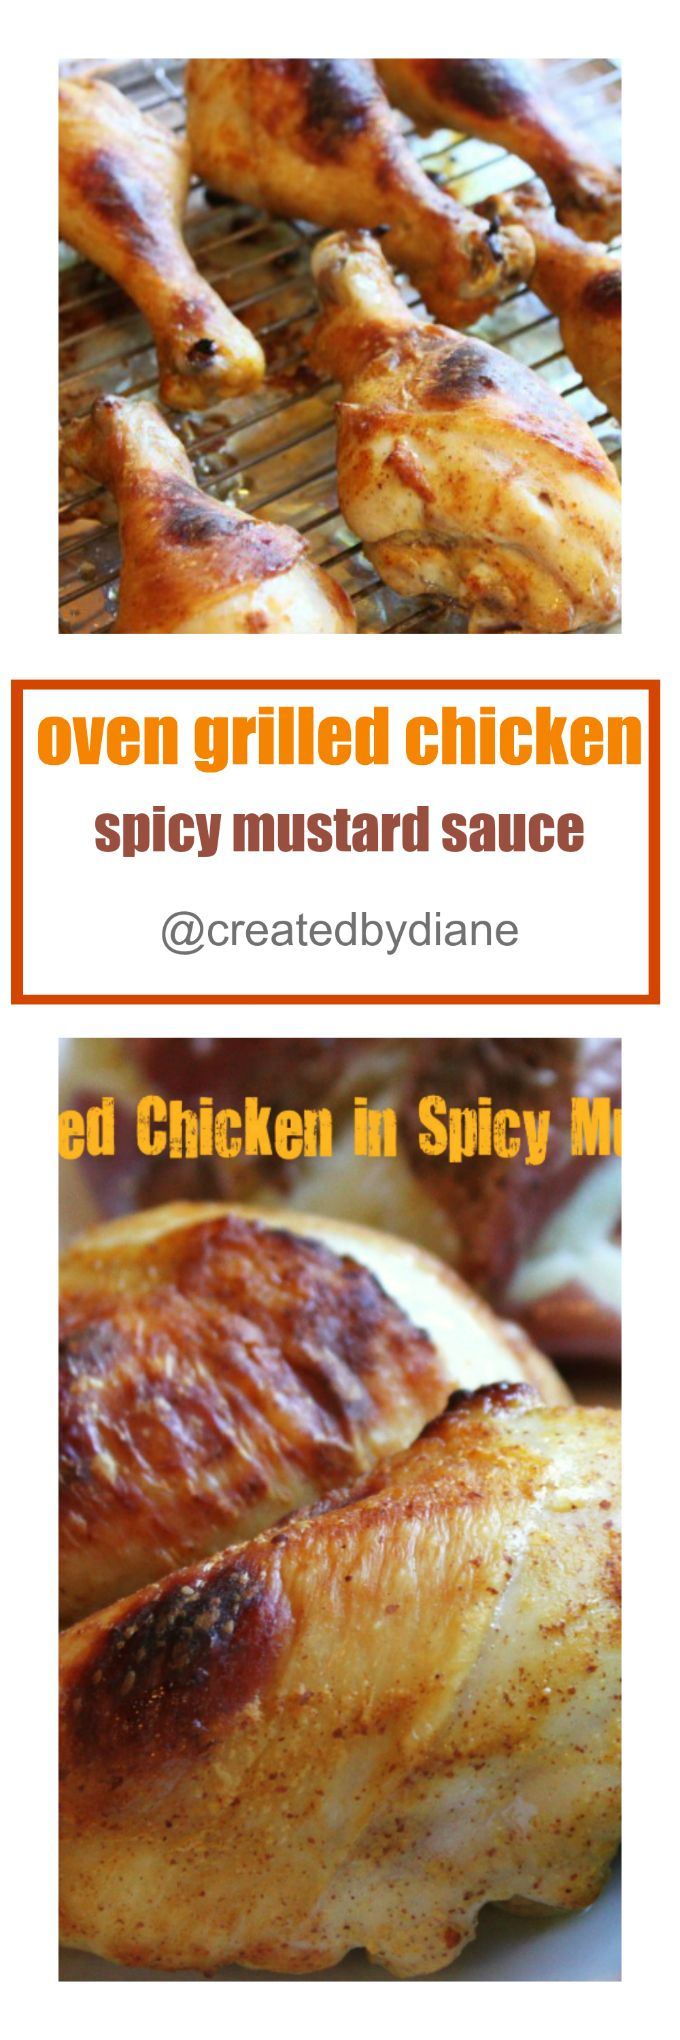 How to grill chicken in the oven, with a spicy mustard sauce